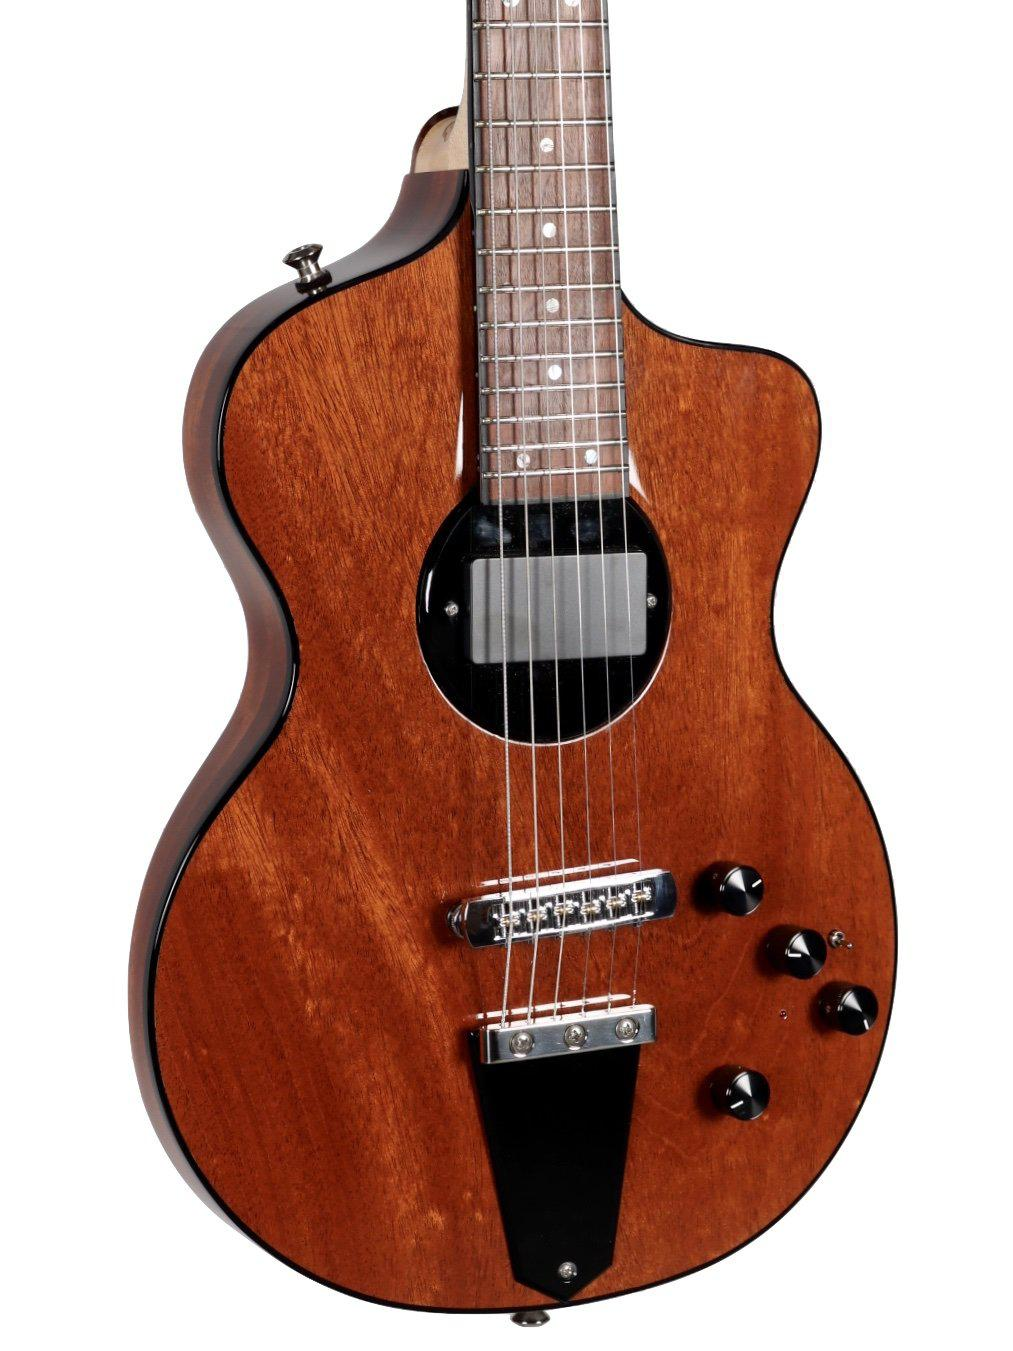 Rick Turner Model 1 All Mahogany With Parametric EQ #5463 - Rick Turner Guitars - Heartbreaker Guitars